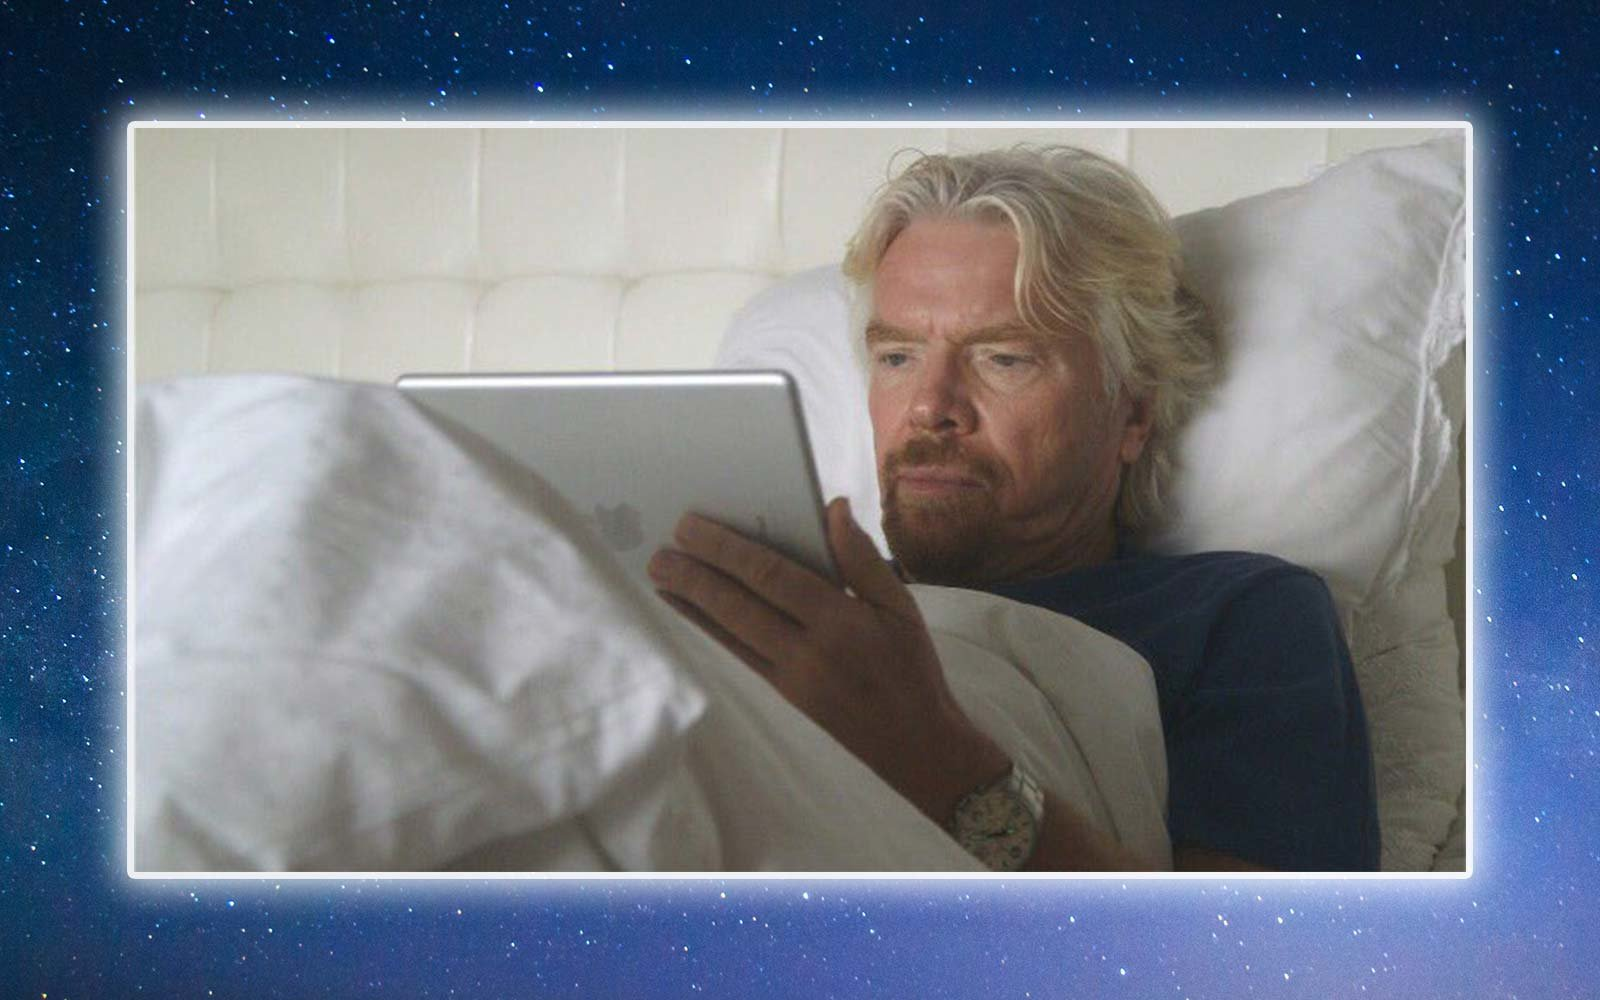 richard branson s bedtime routine could be your new secret to better